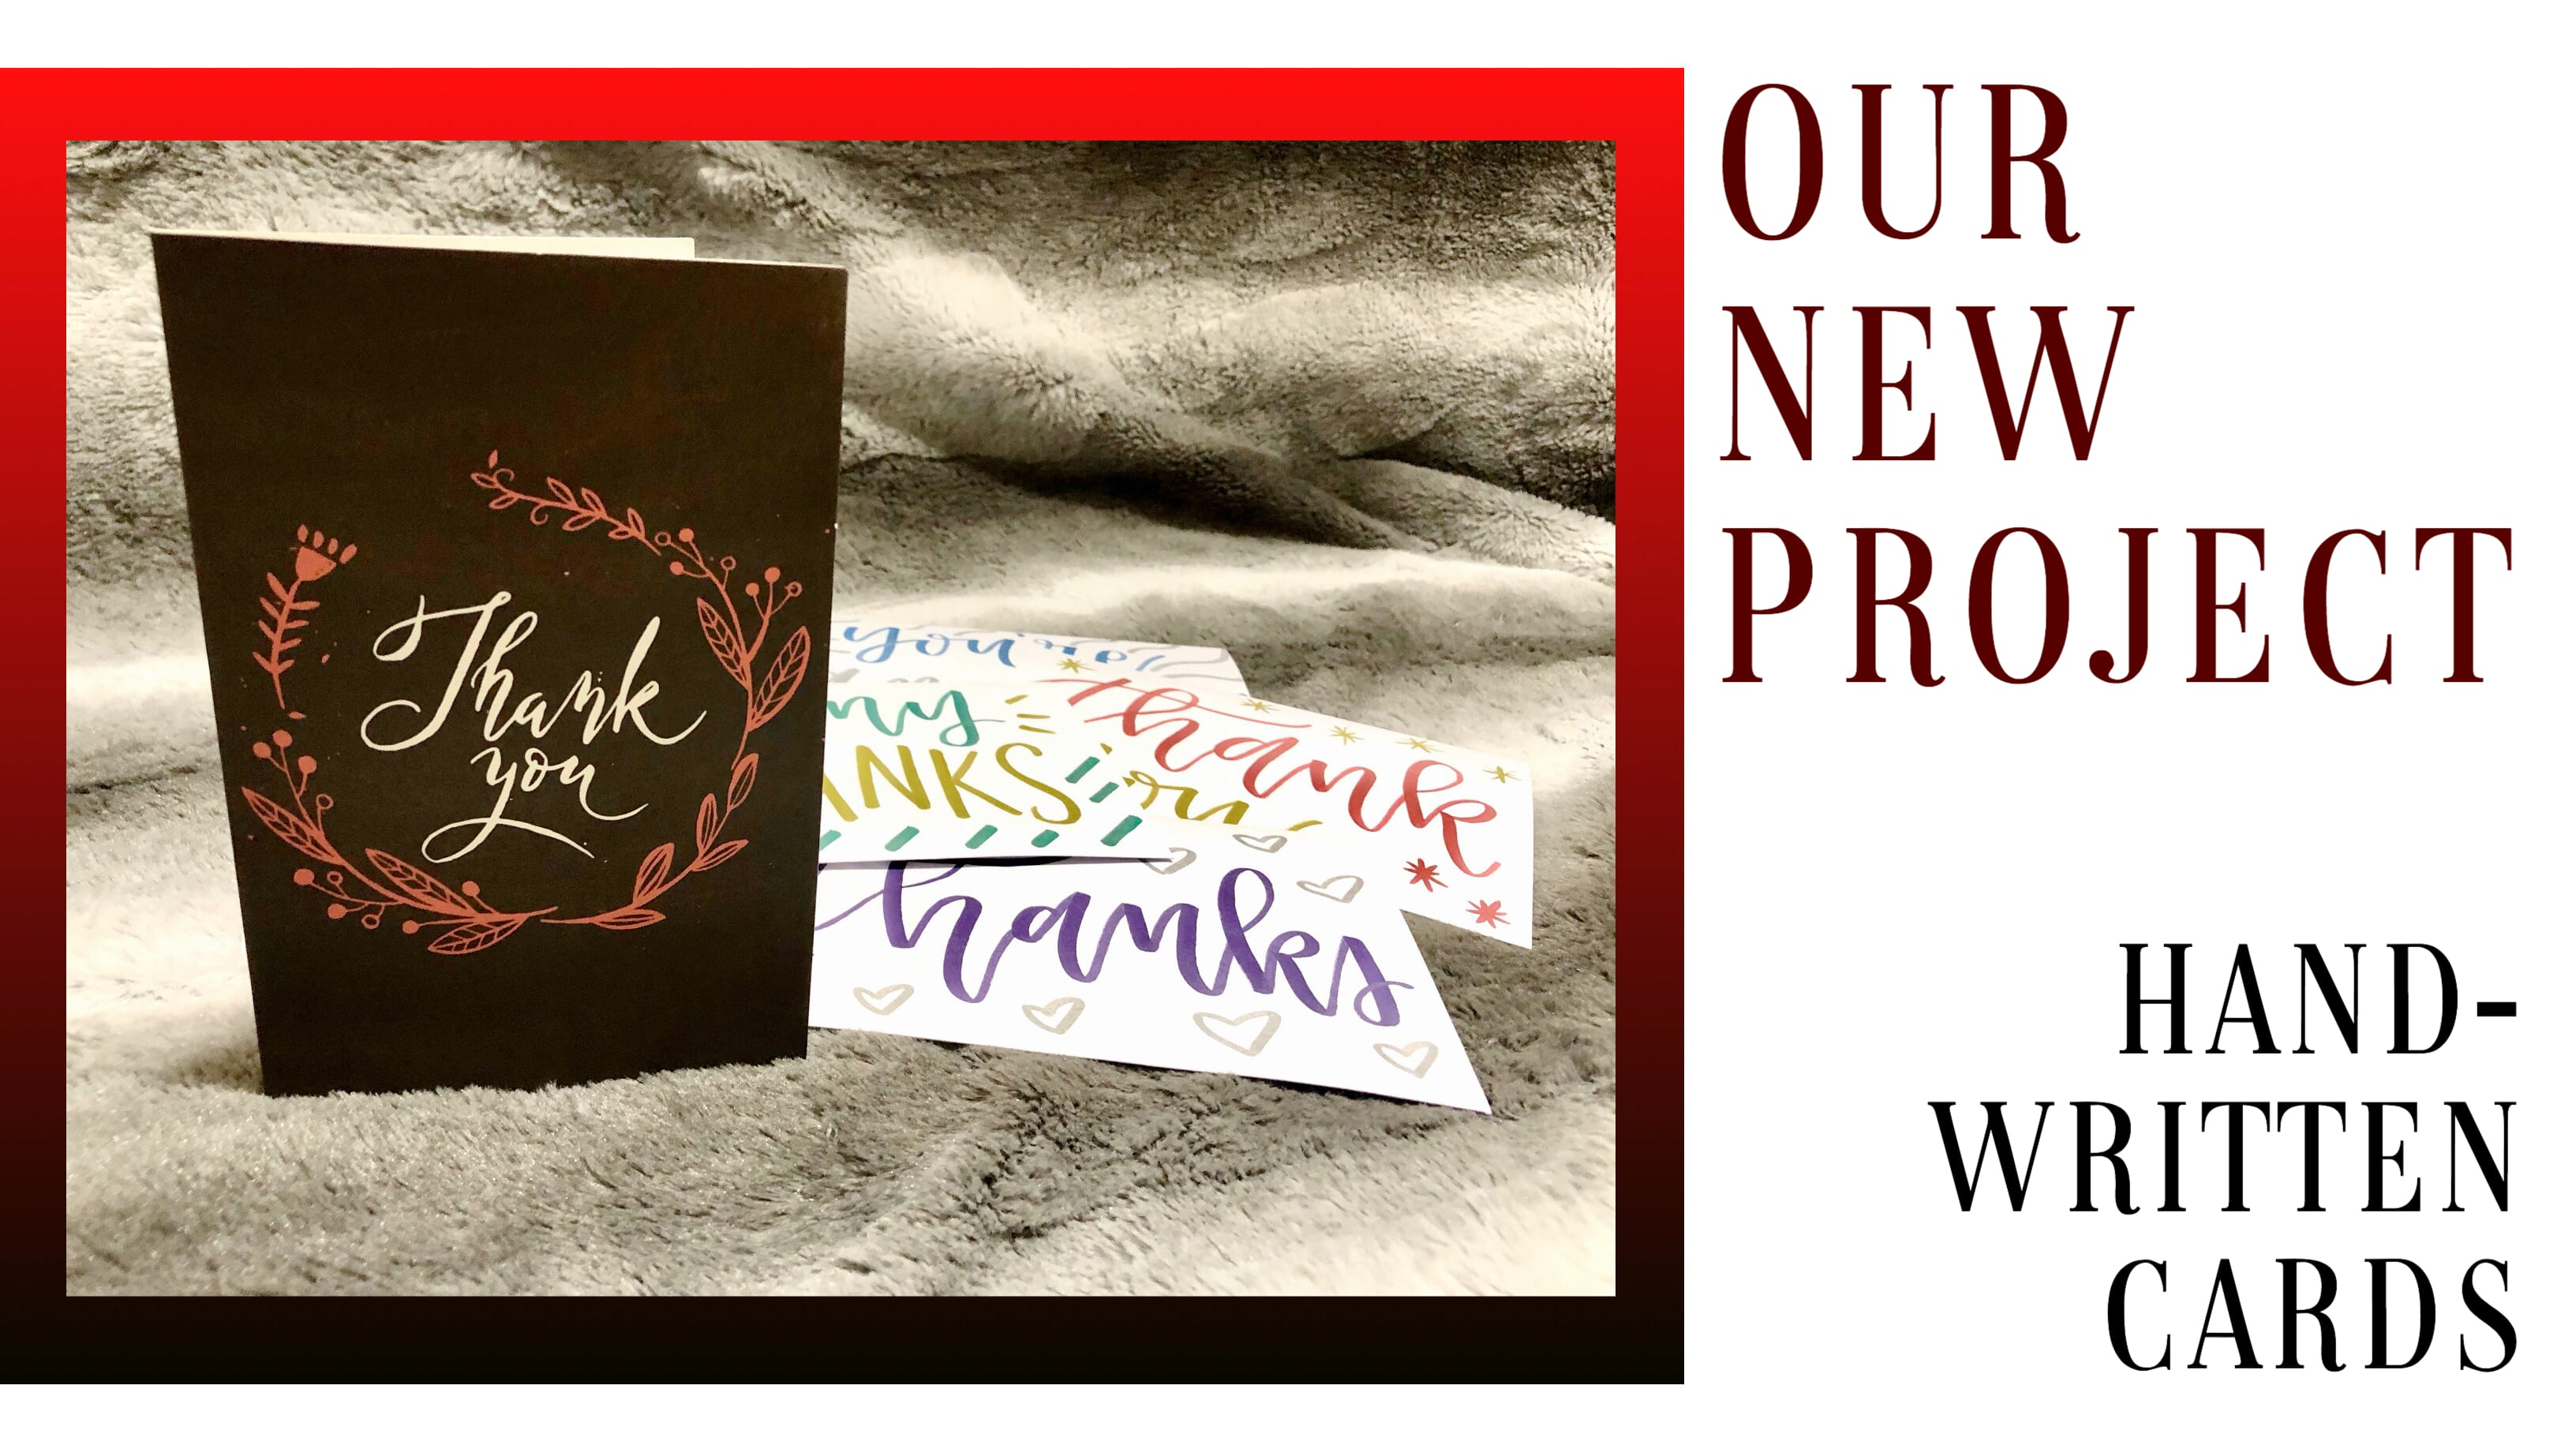 Our New Project: Handwritten Cards